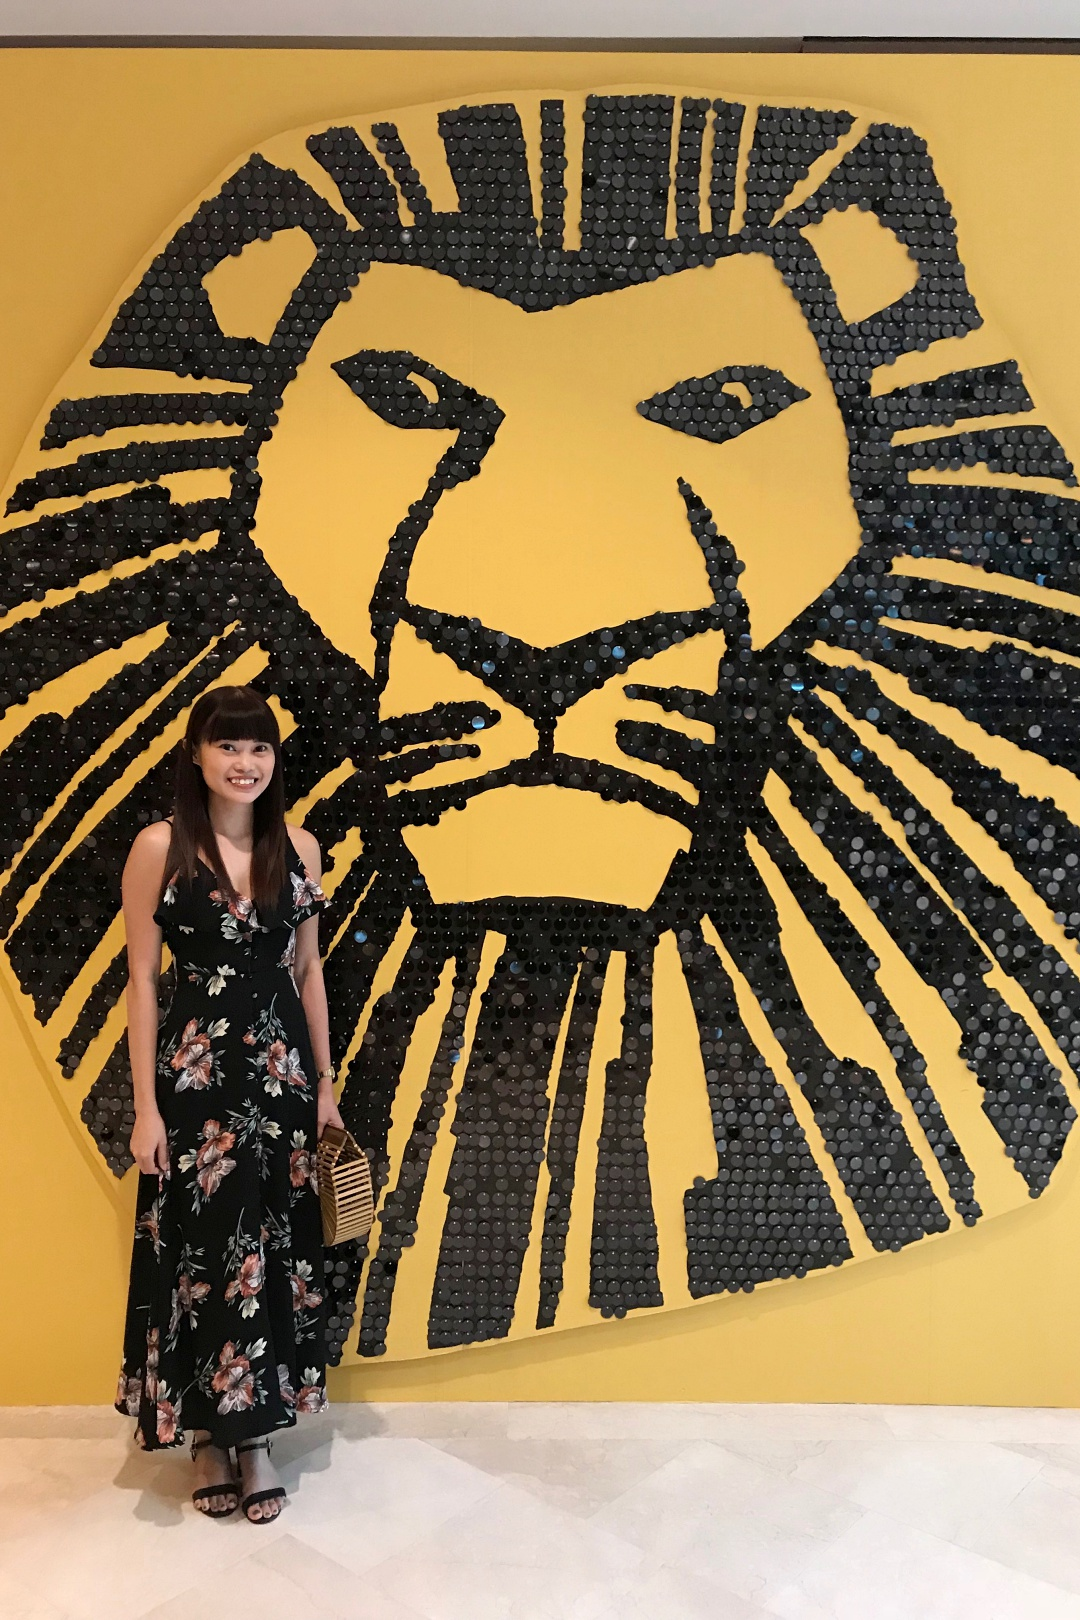 Marina Bay Sands The Lion King Musical | joanne-khoo.com